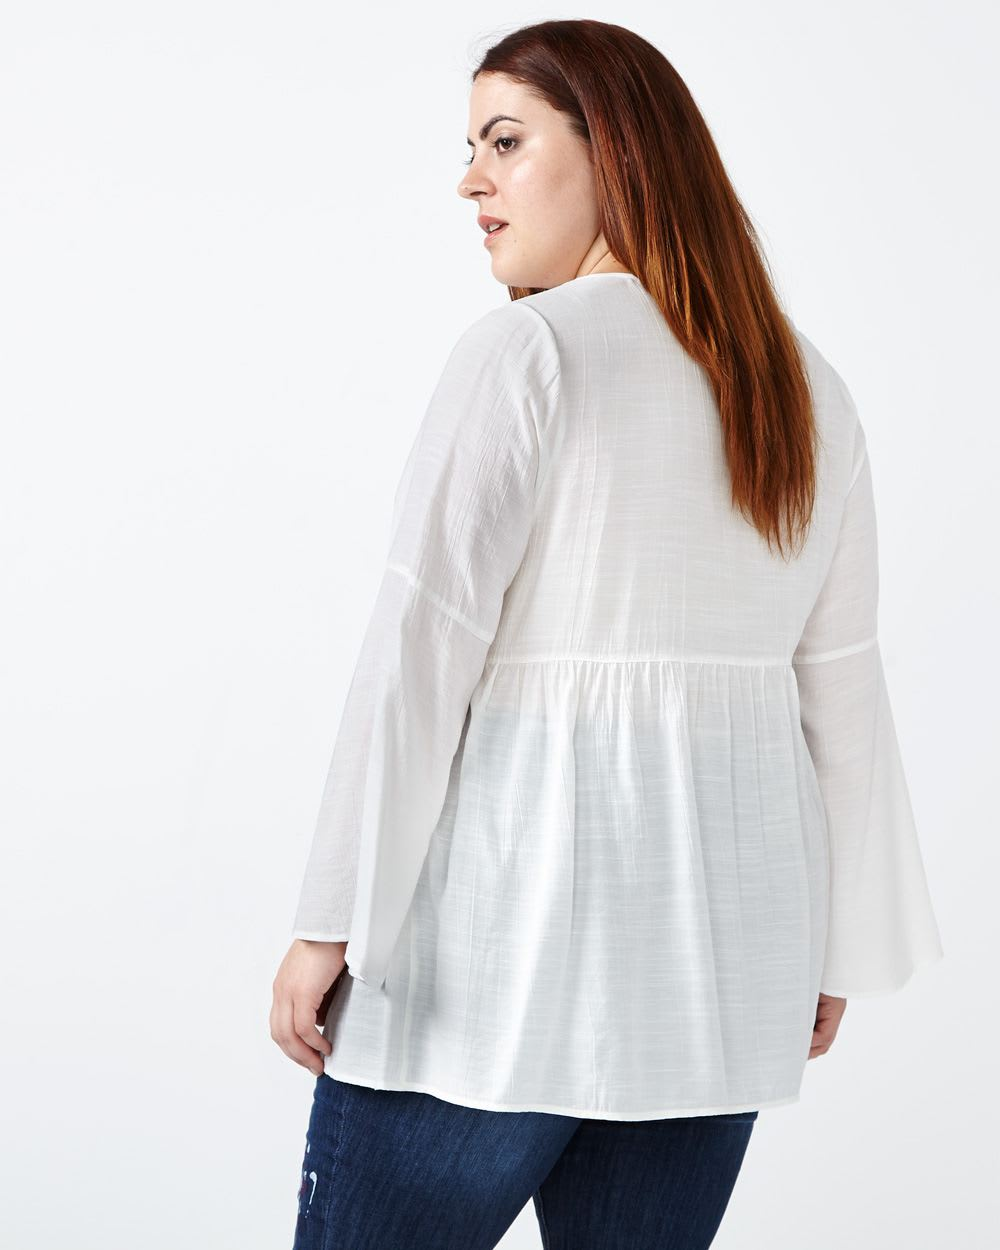 d/c JEANS Bell Sleeve Blouse with Lace